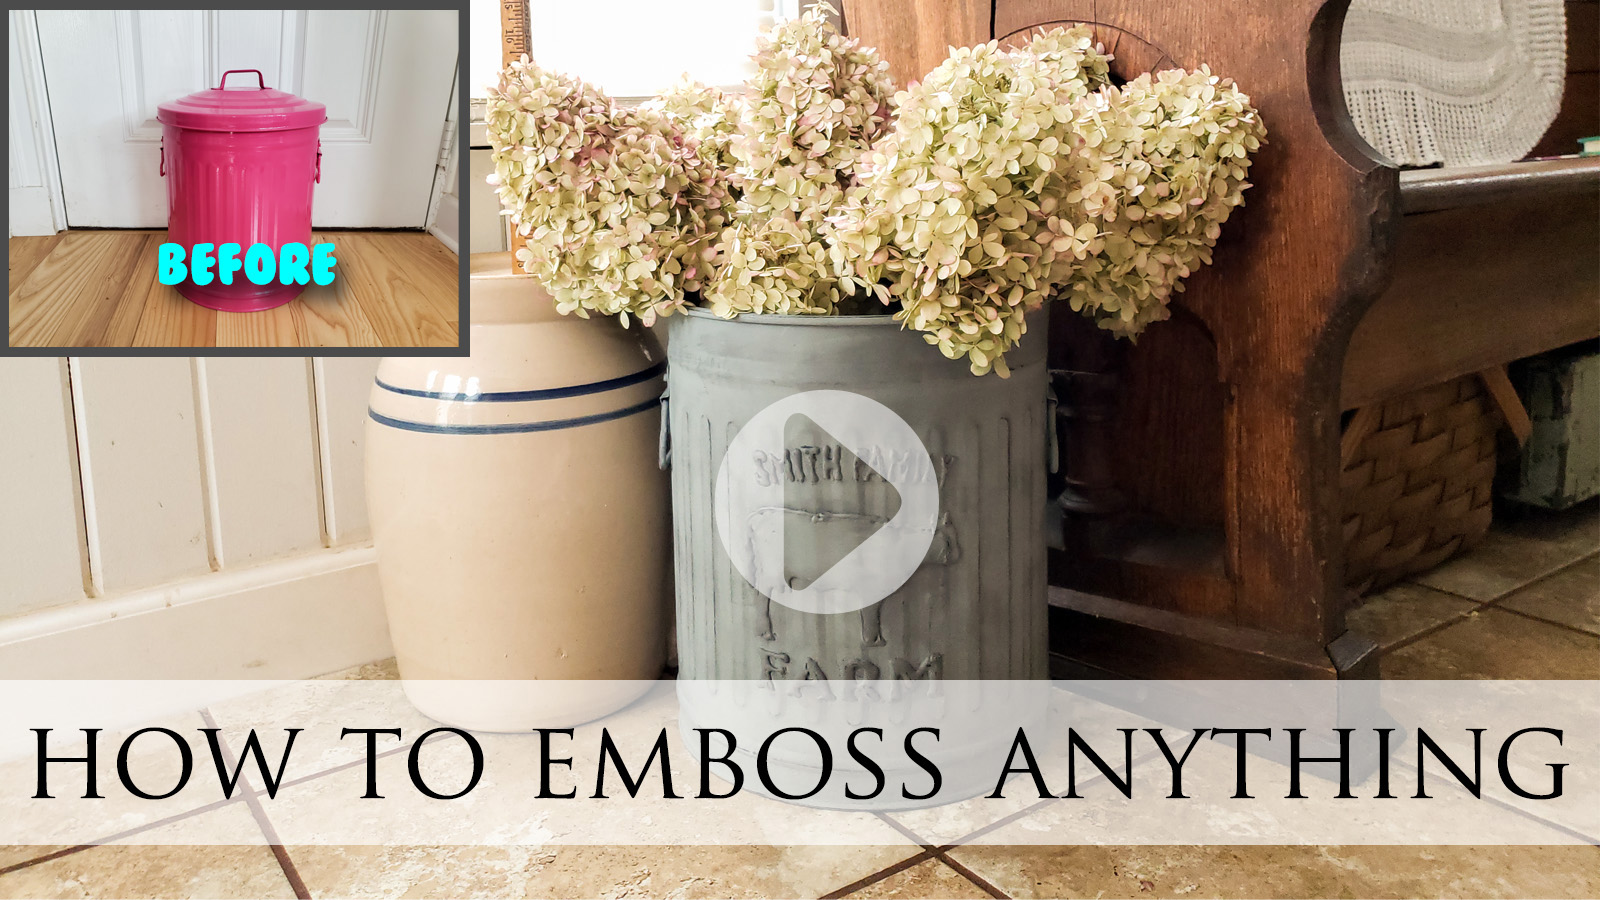 Video Tutorial How to Emboss Anything by Larissa of Prodigal Pieces | prodigalpieces.com